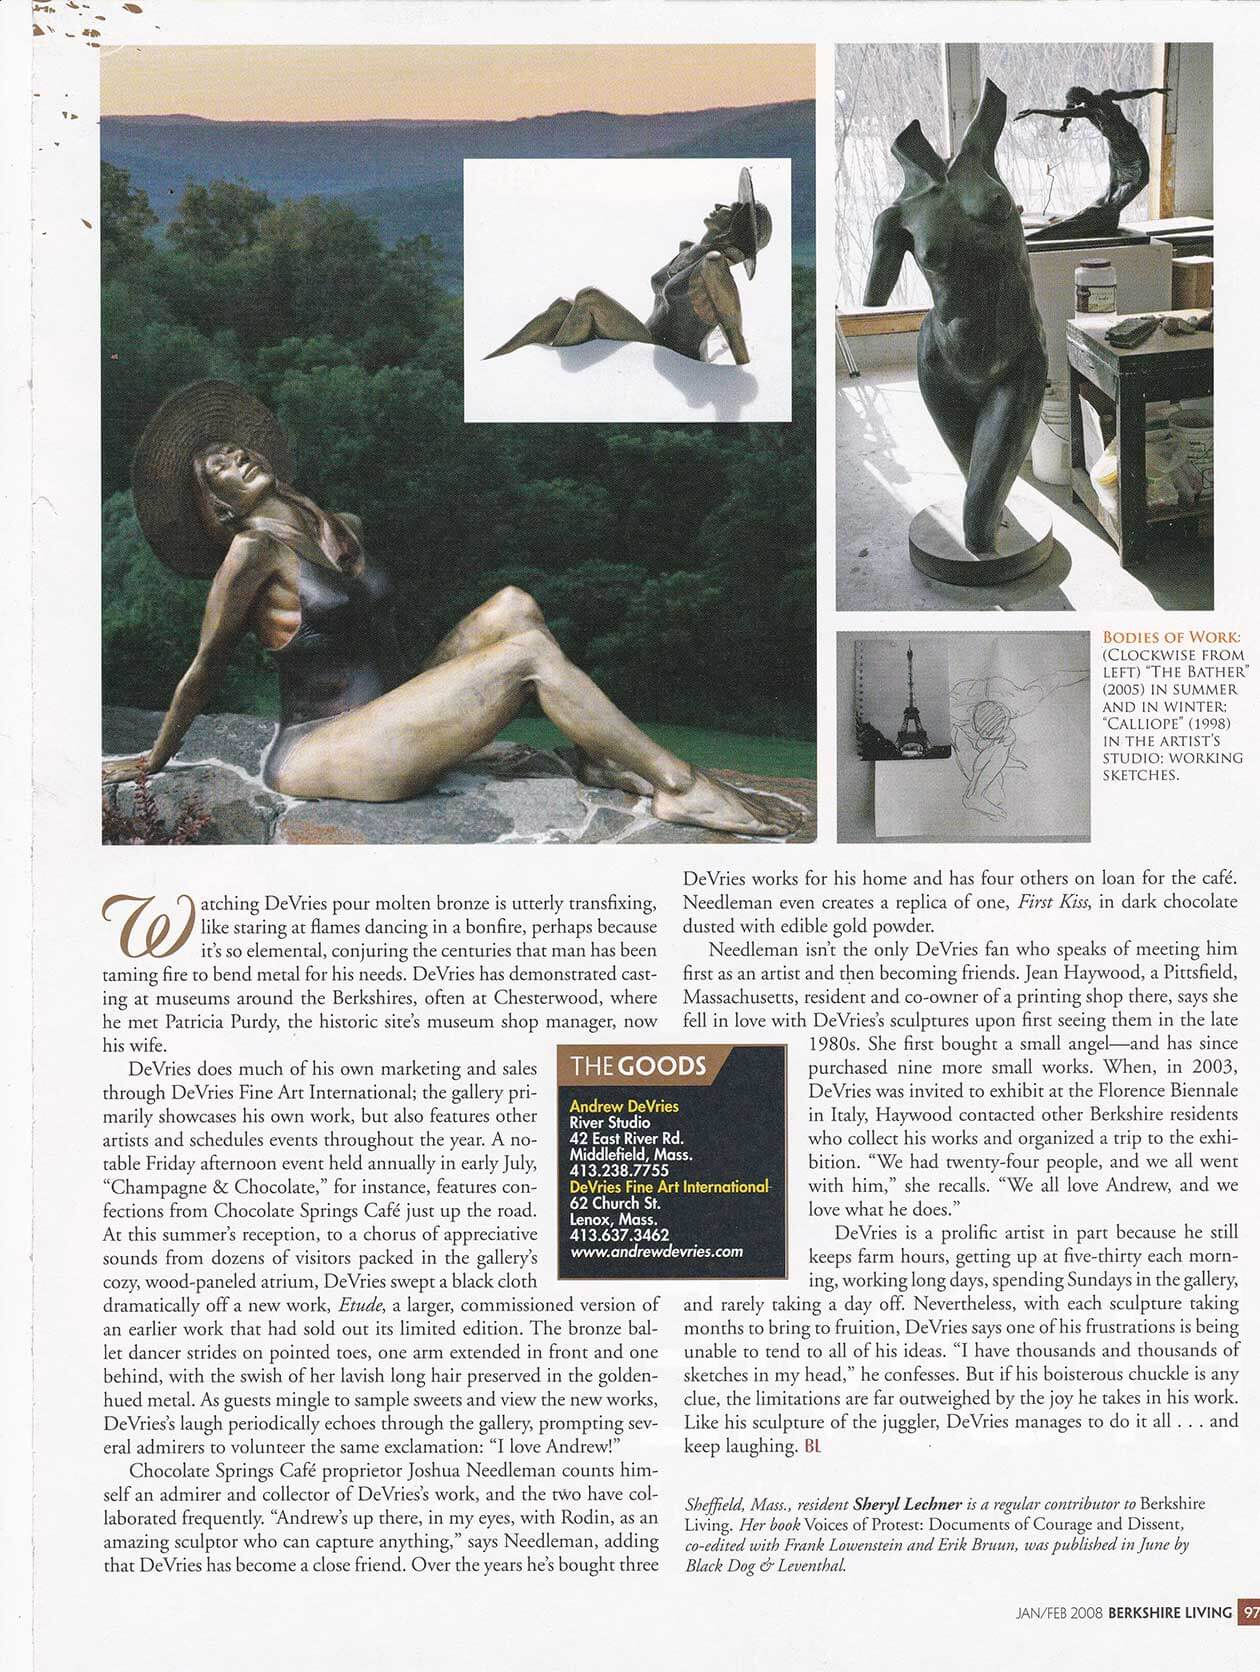 Berkshire Living Magazine January/February 2008 page 97